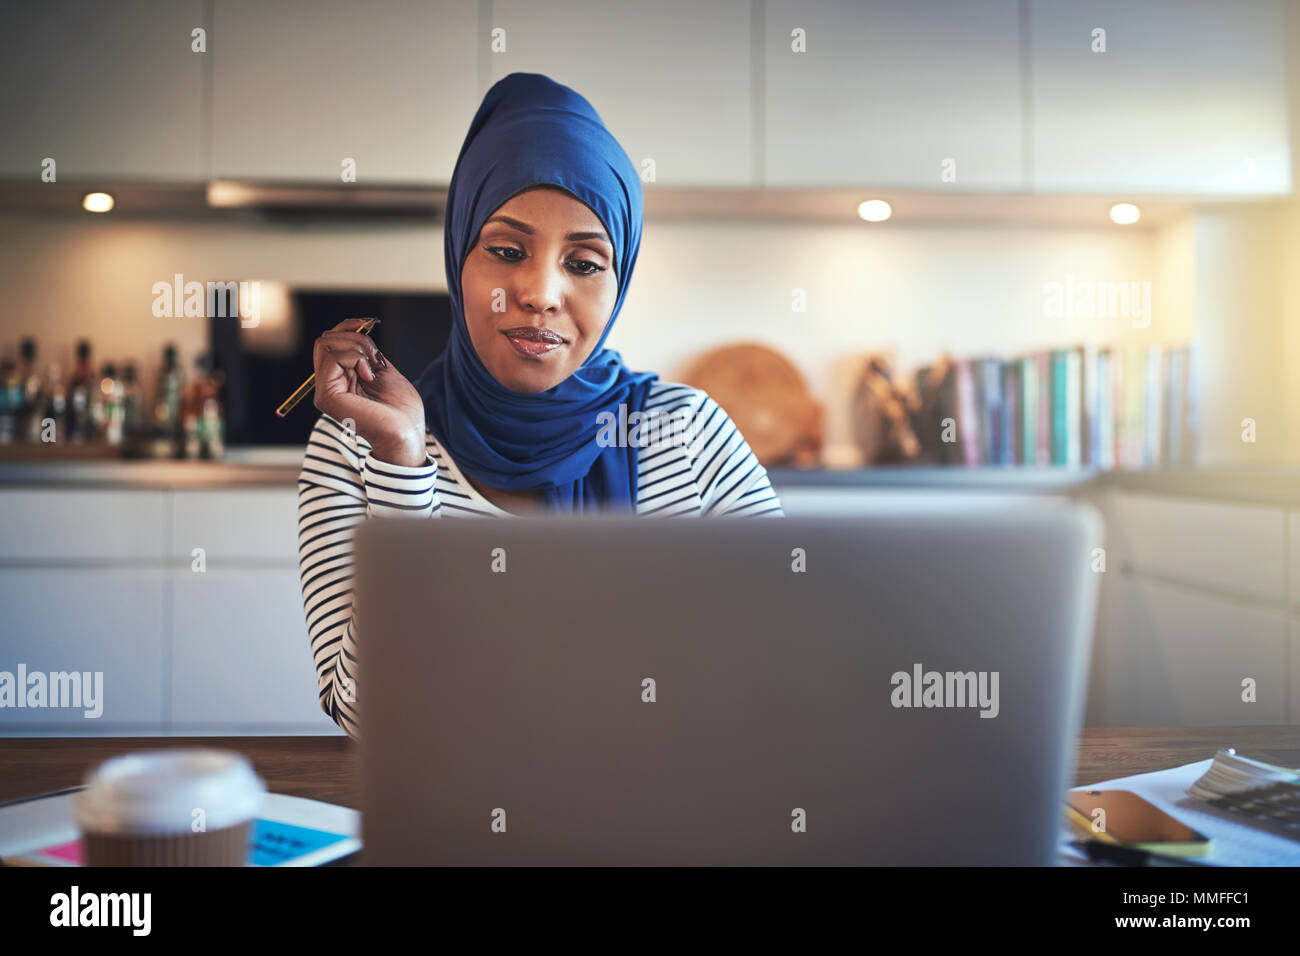 Smiling young Muslim female entrepreneur wearing a hijab sitting at a table in her kitchen writing down notes and working on a laptop Stock Photo